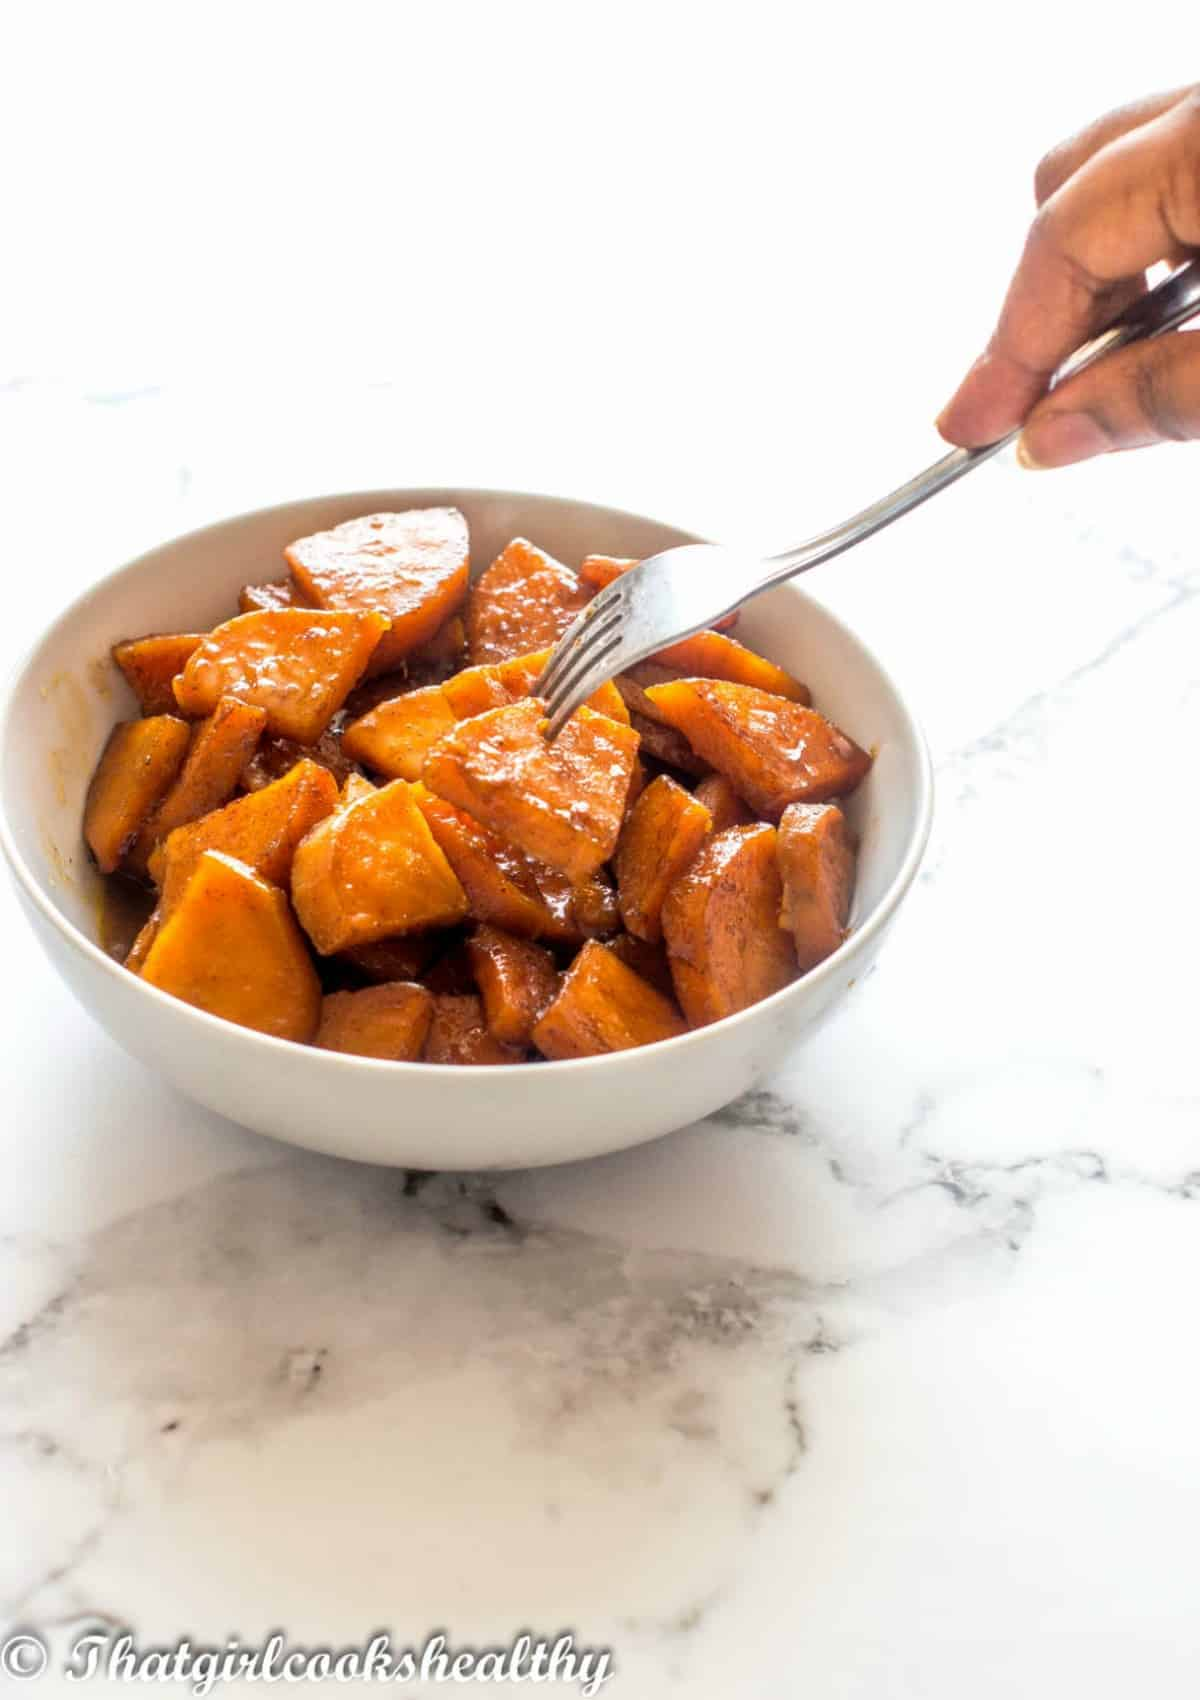 grabbing the yams with a fork